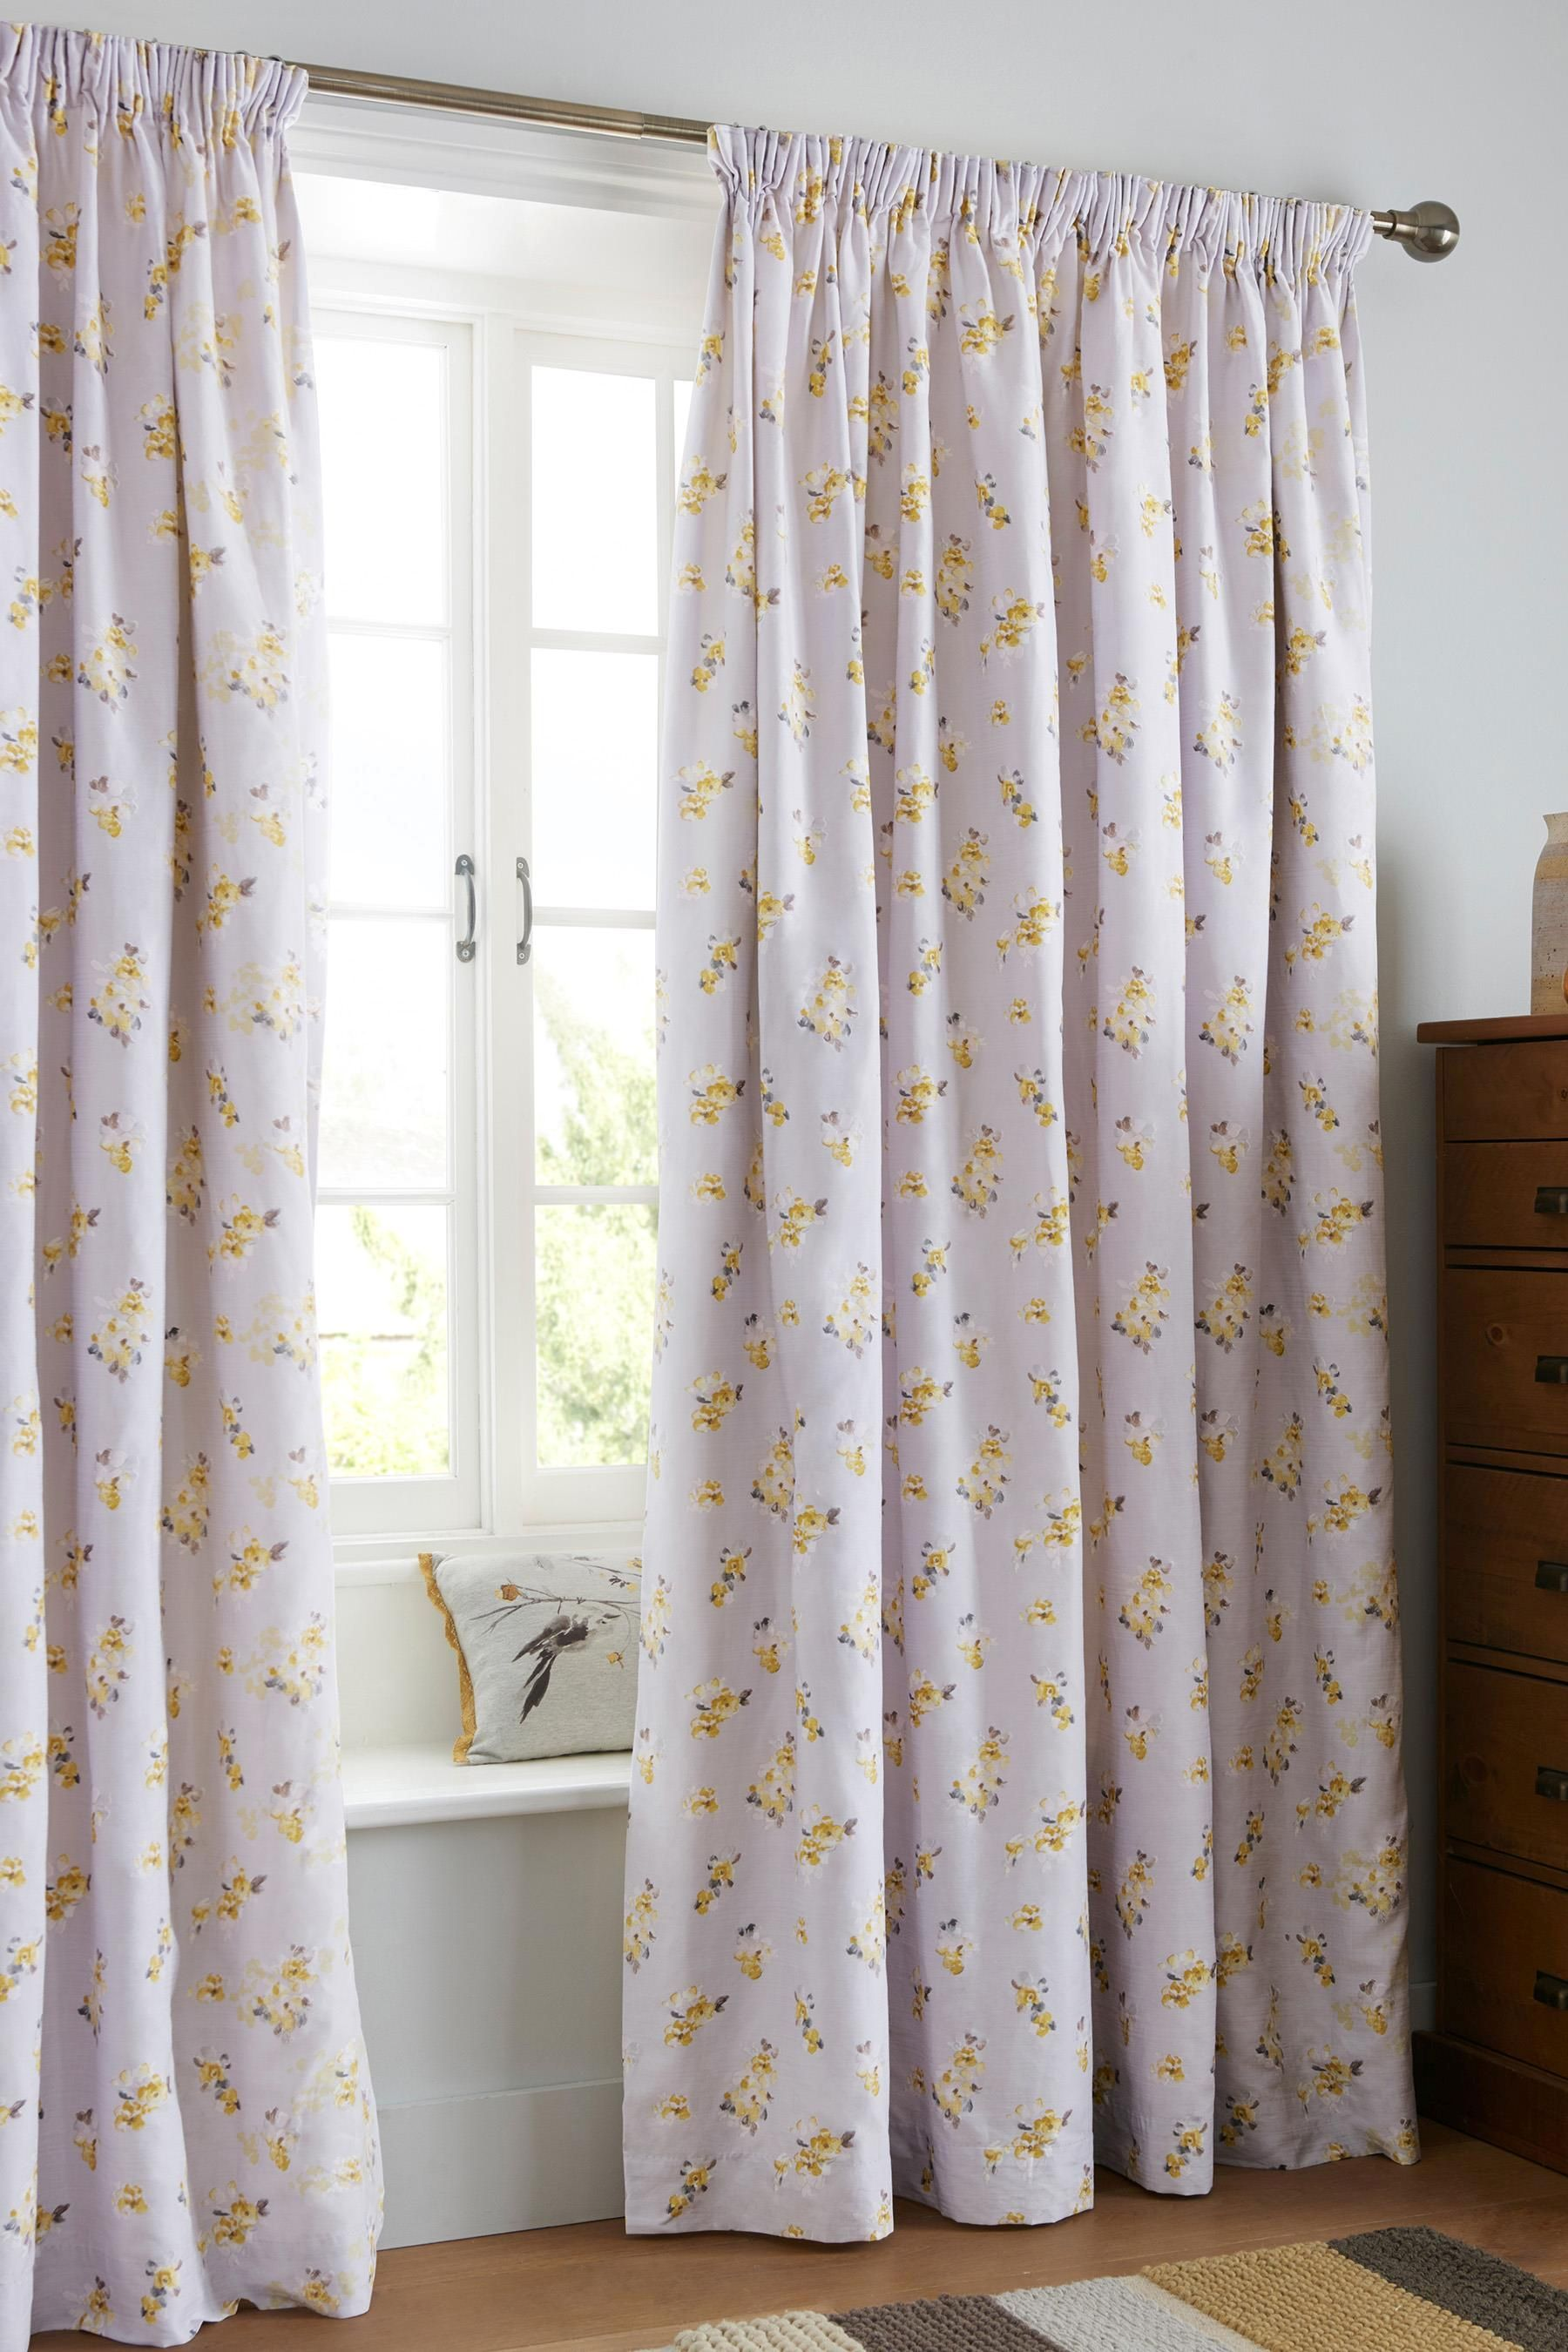 Next Bedroom Curtains Buy Cotton Sateen Ochre Watercolour Floral Pencil Pleat Curtains